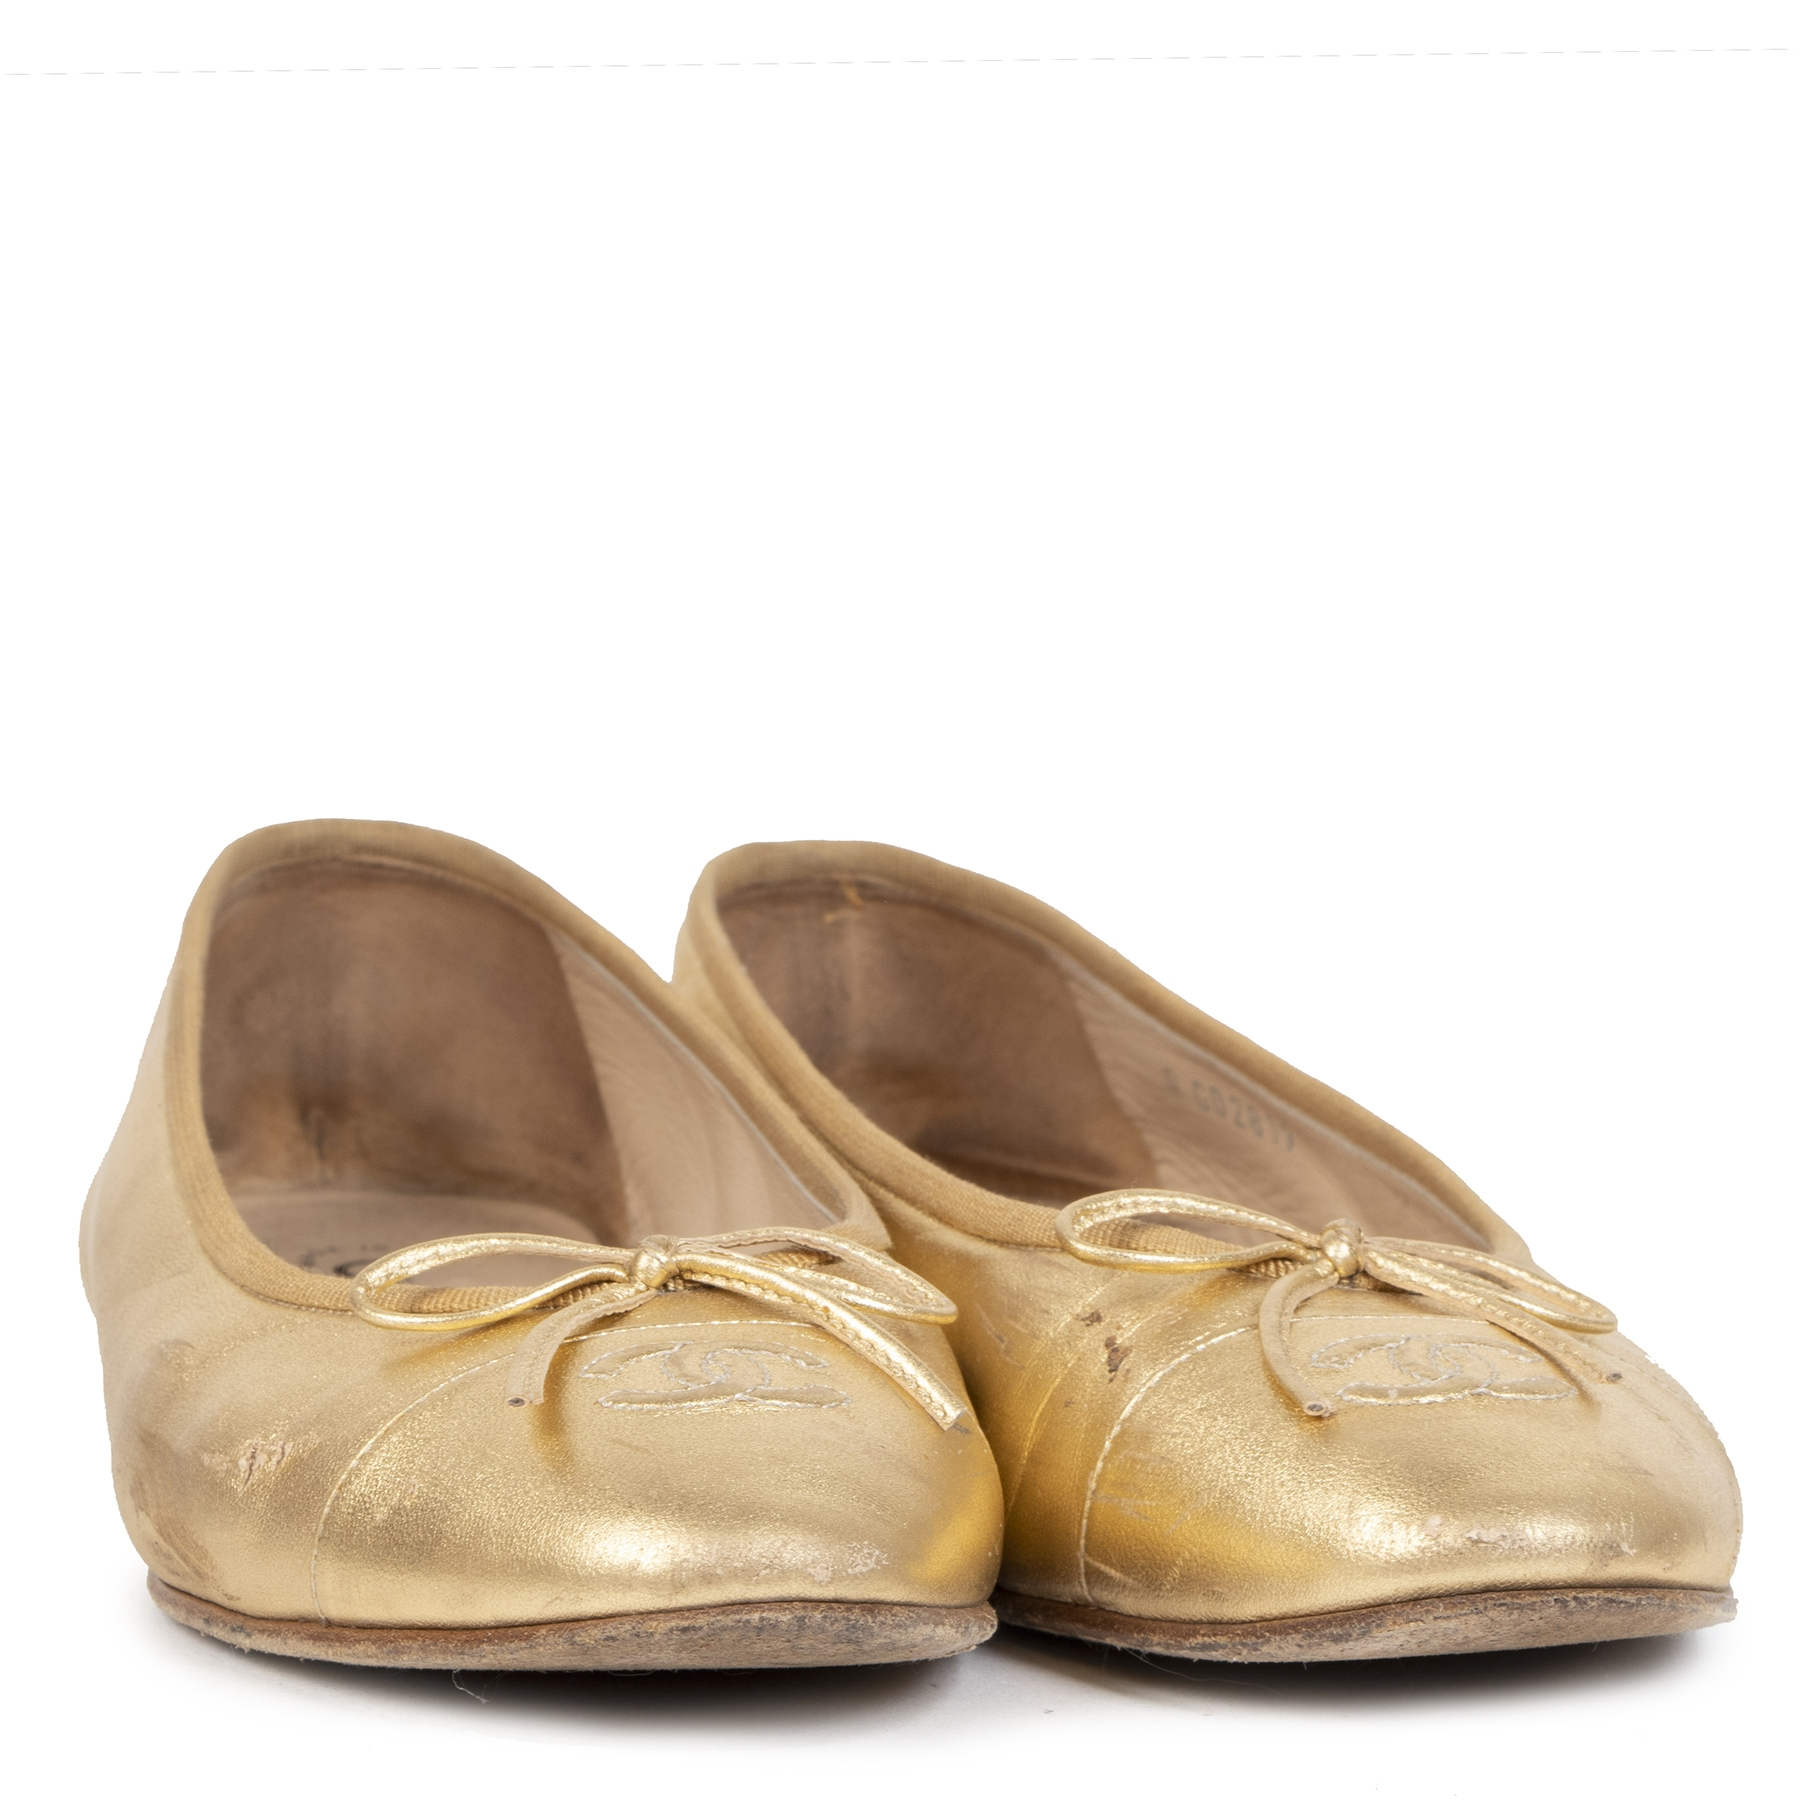 Authentique seconde-main vintage Chanel Gold Ballerina Flats - size 40 achète en ligne webshop LabelLOV